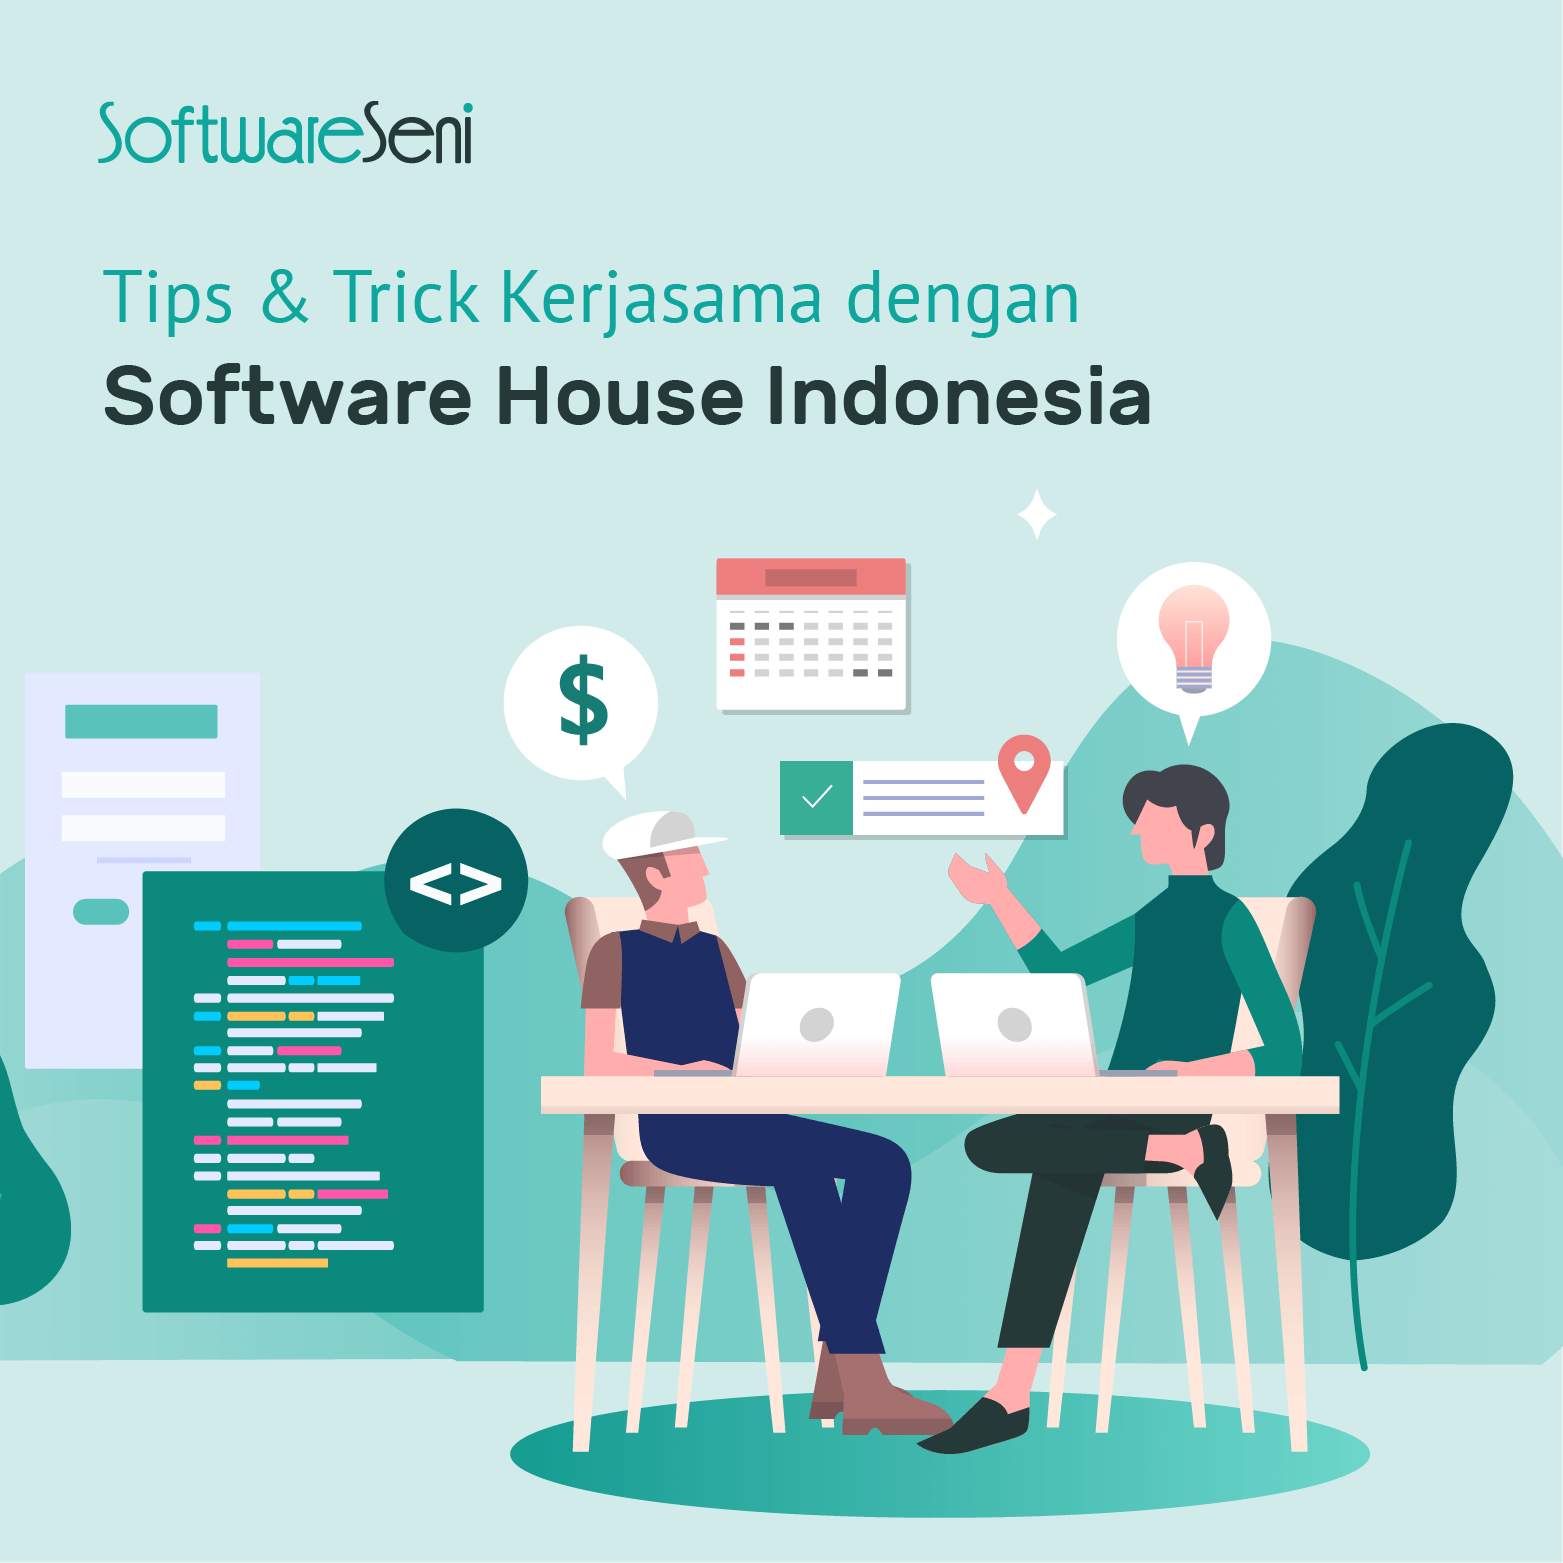 Tips & Trik Kerjasama dengan Software House Indonesia